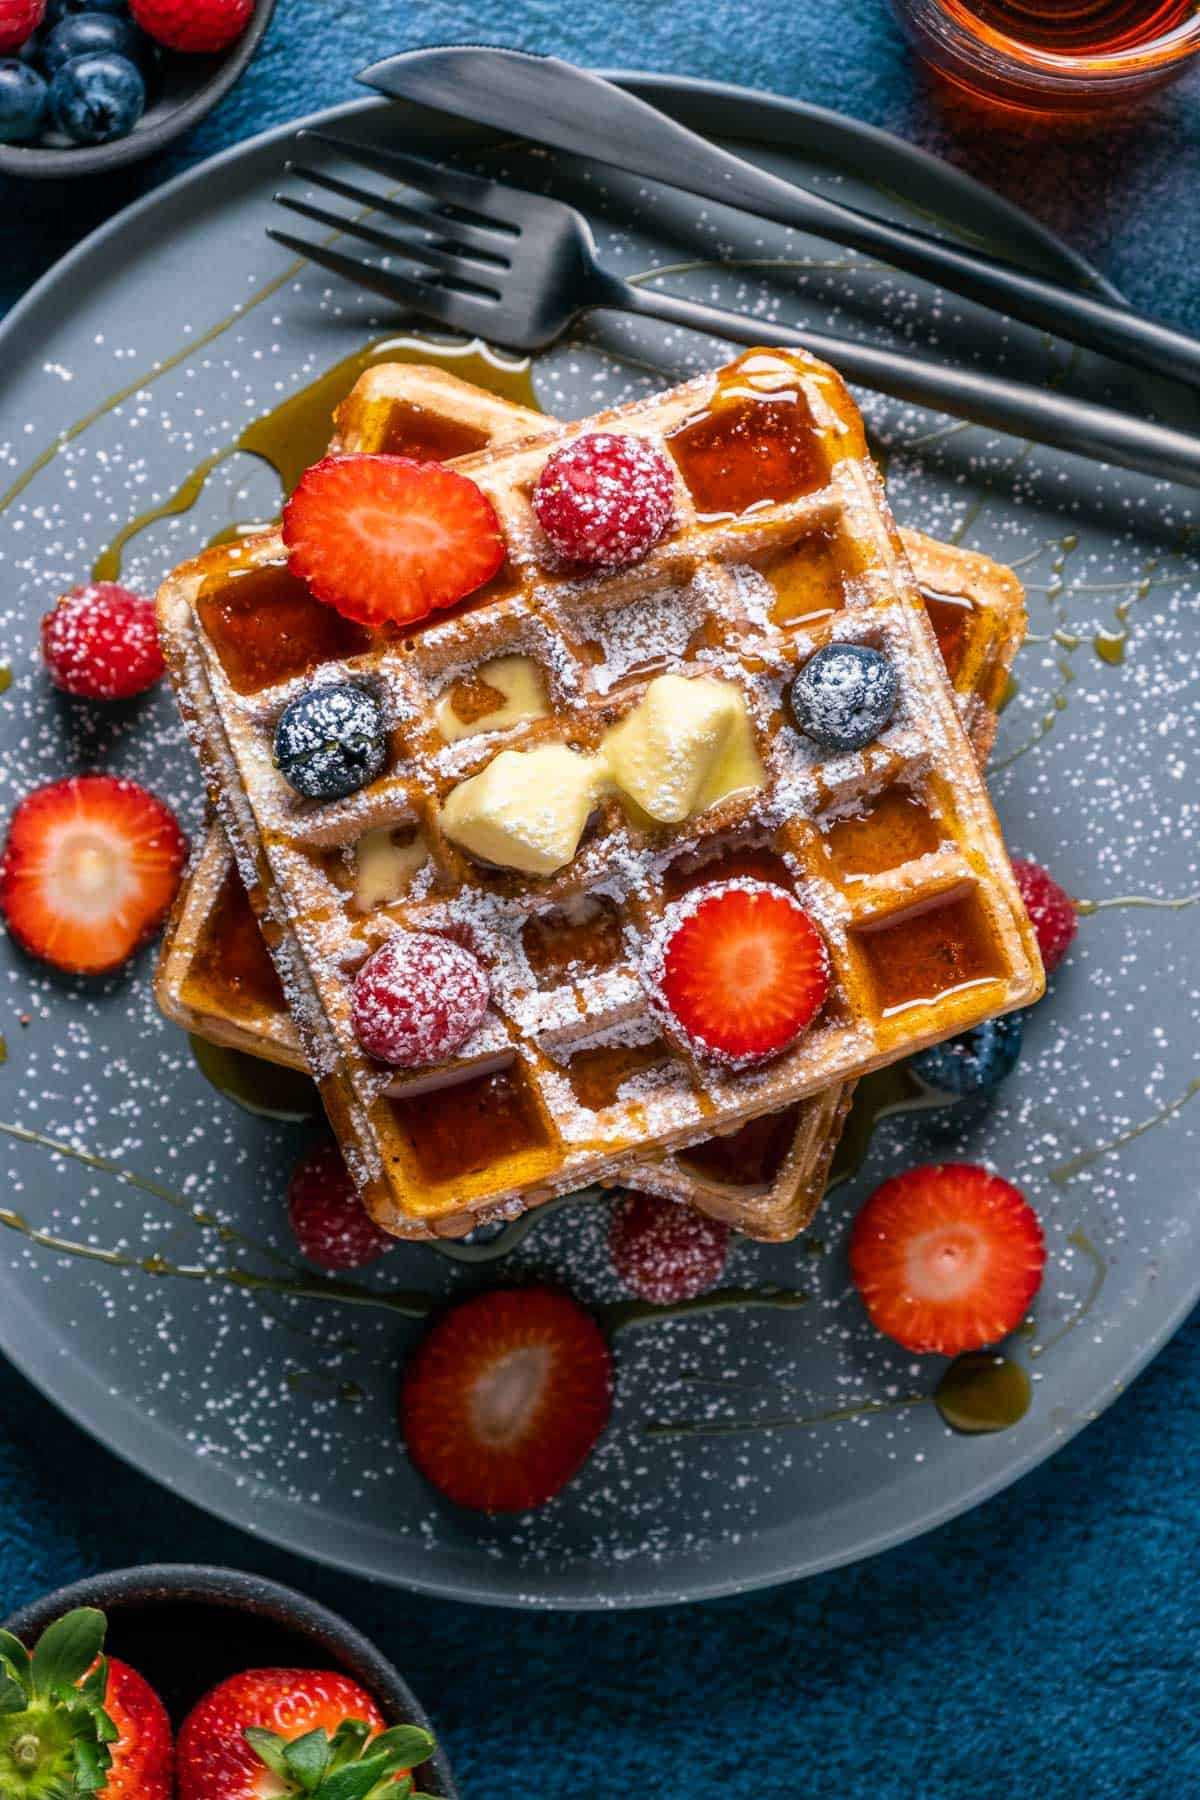 Overhead photo of vegan waffles on a plate.